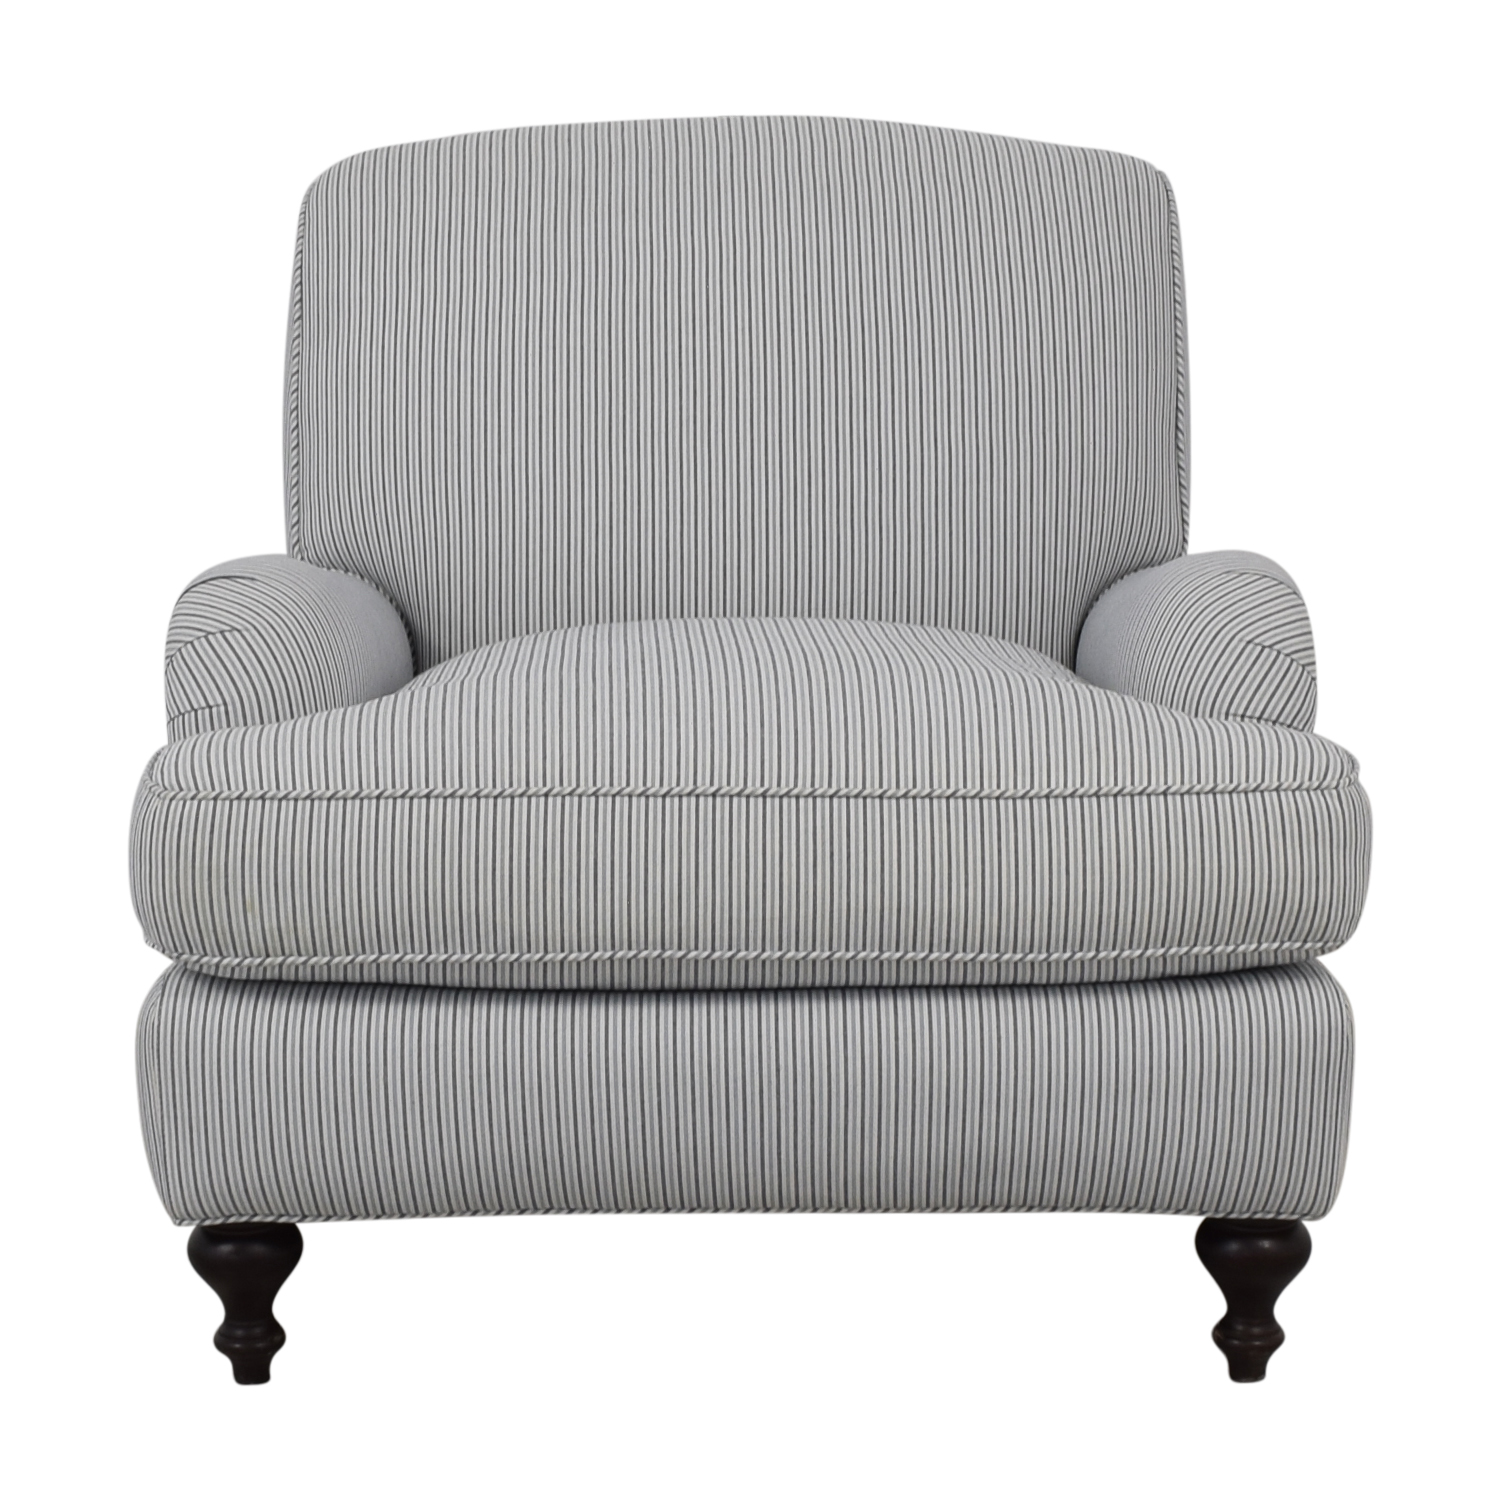 Serena & Lily Serena & Lily Miramar Upholstered Side Chair price